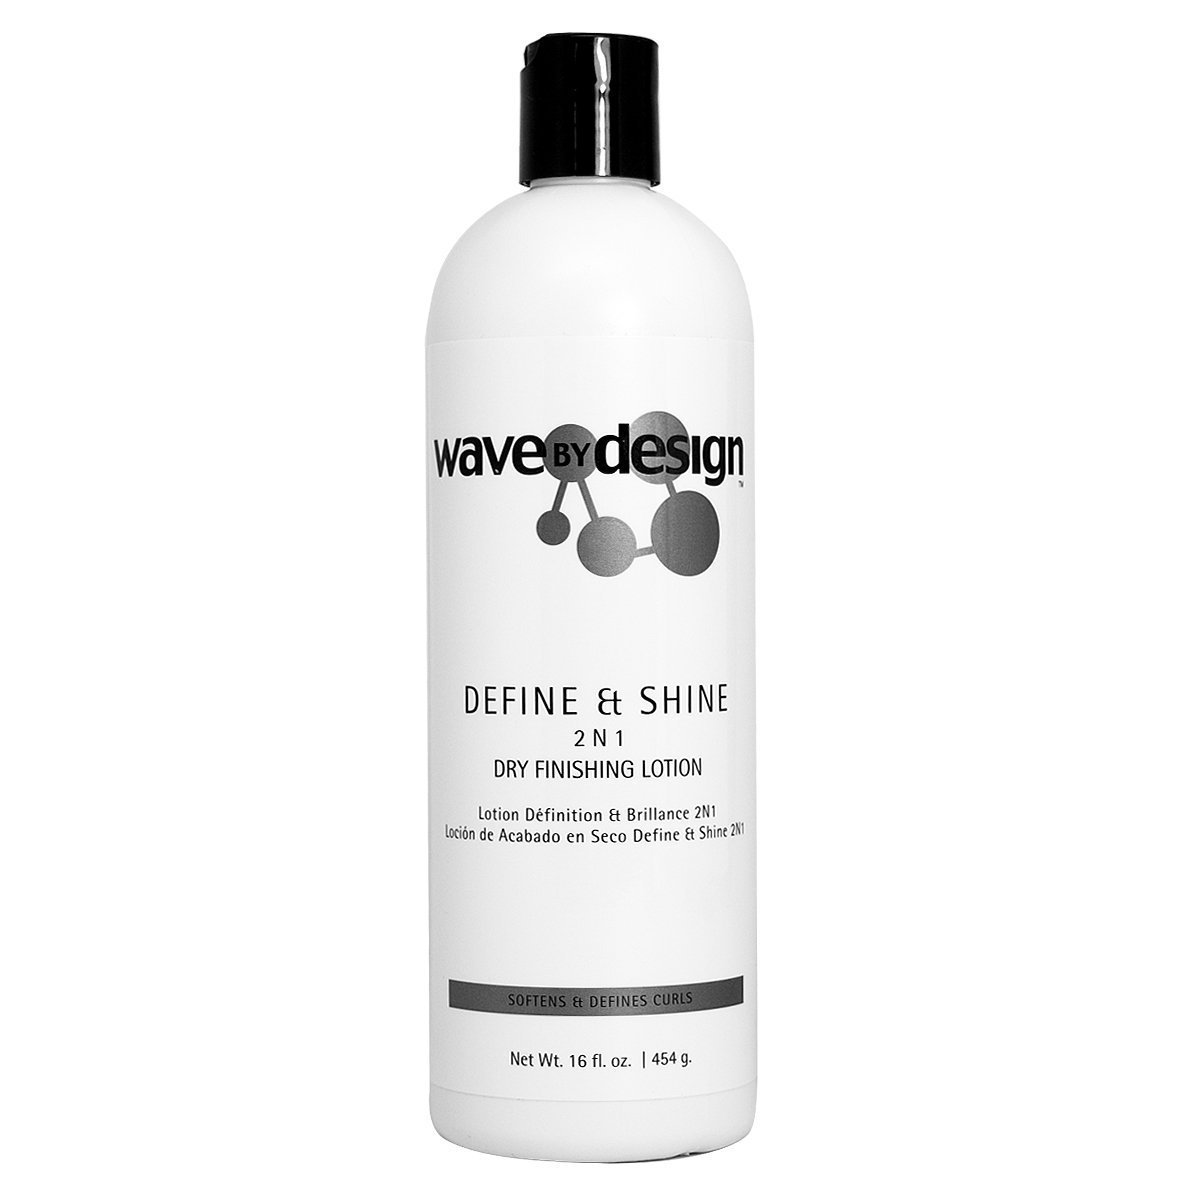 """Wave by Design Define & Shine 2 N 1 Dry Finishing Lotion 16oz """"Pack of 2"""""""